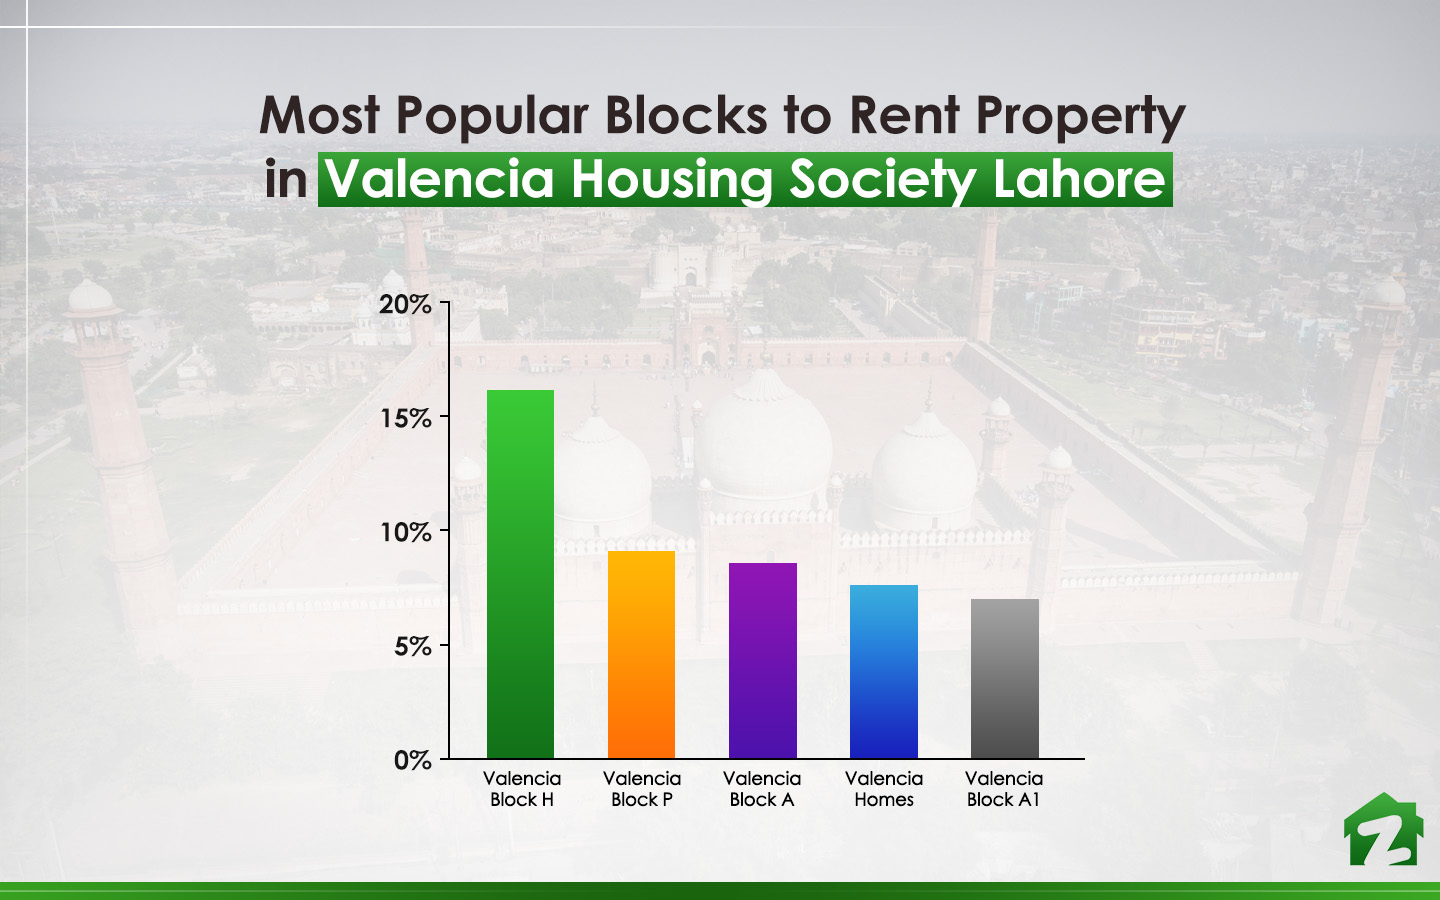 These are the most searched blocks for renting properties in Valencia Housing Society Lahore